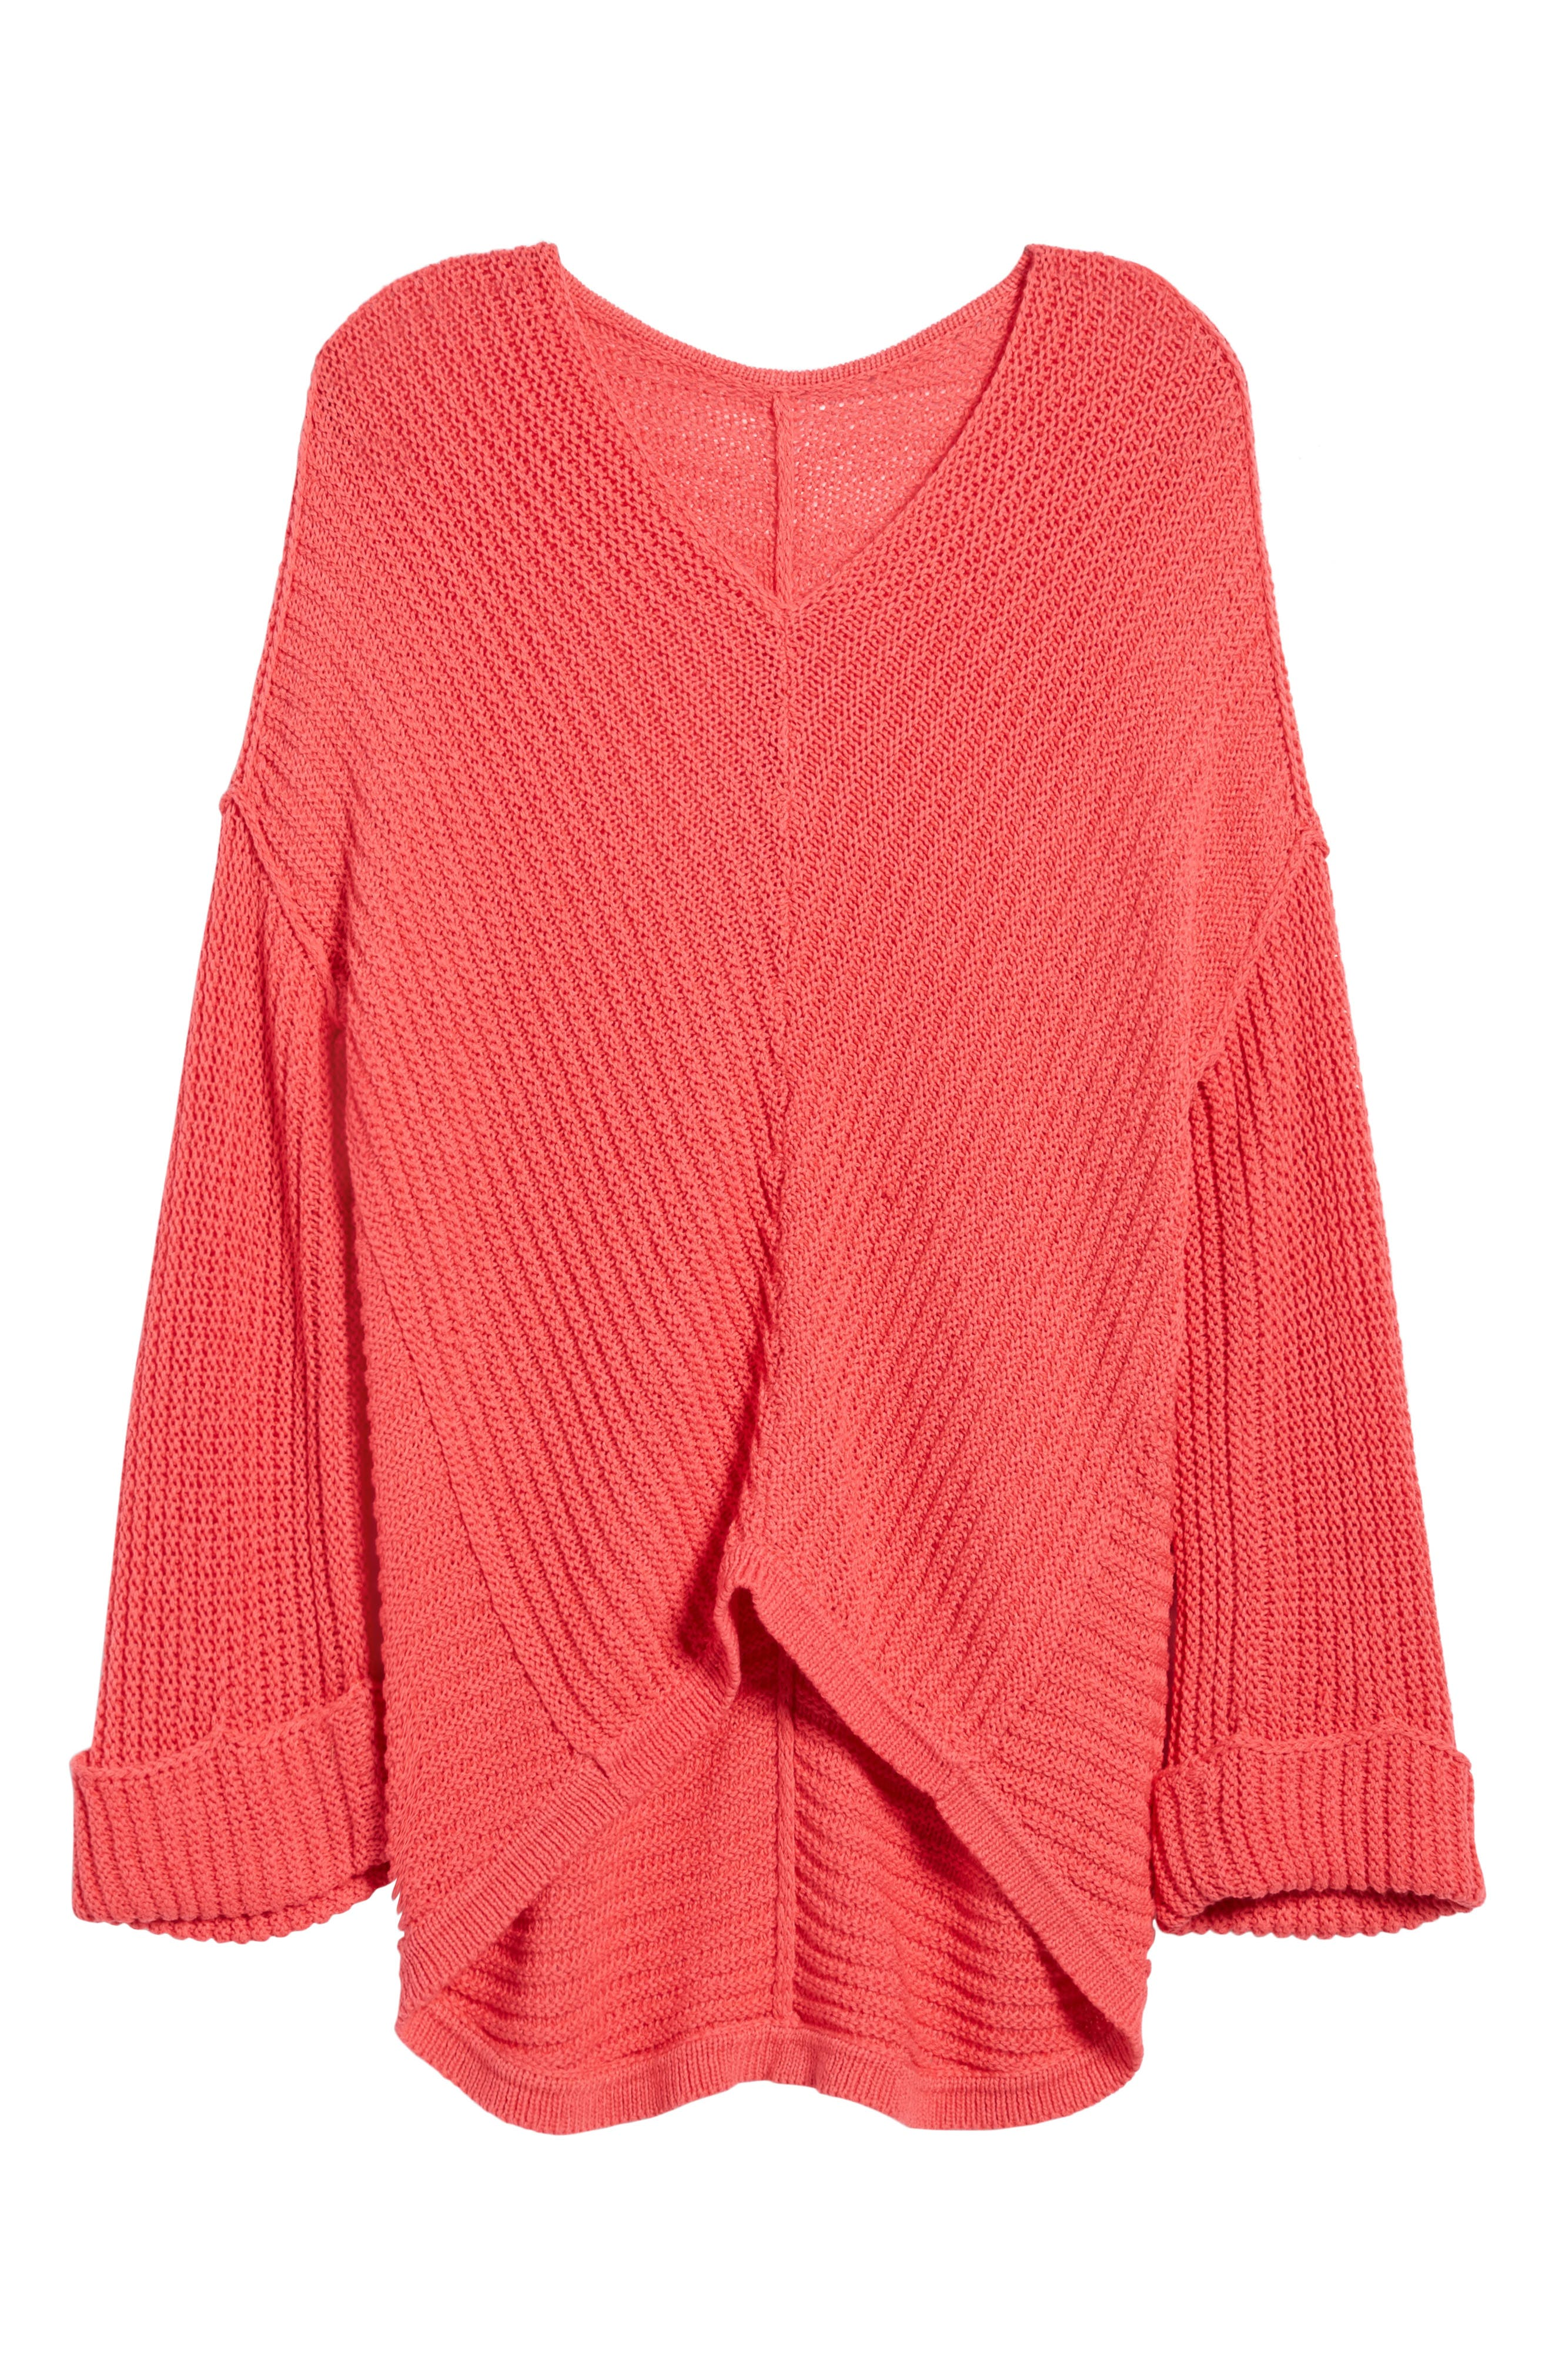 Cuffed Sleeve Sweater,                             Alternate thumbnail 22, color,